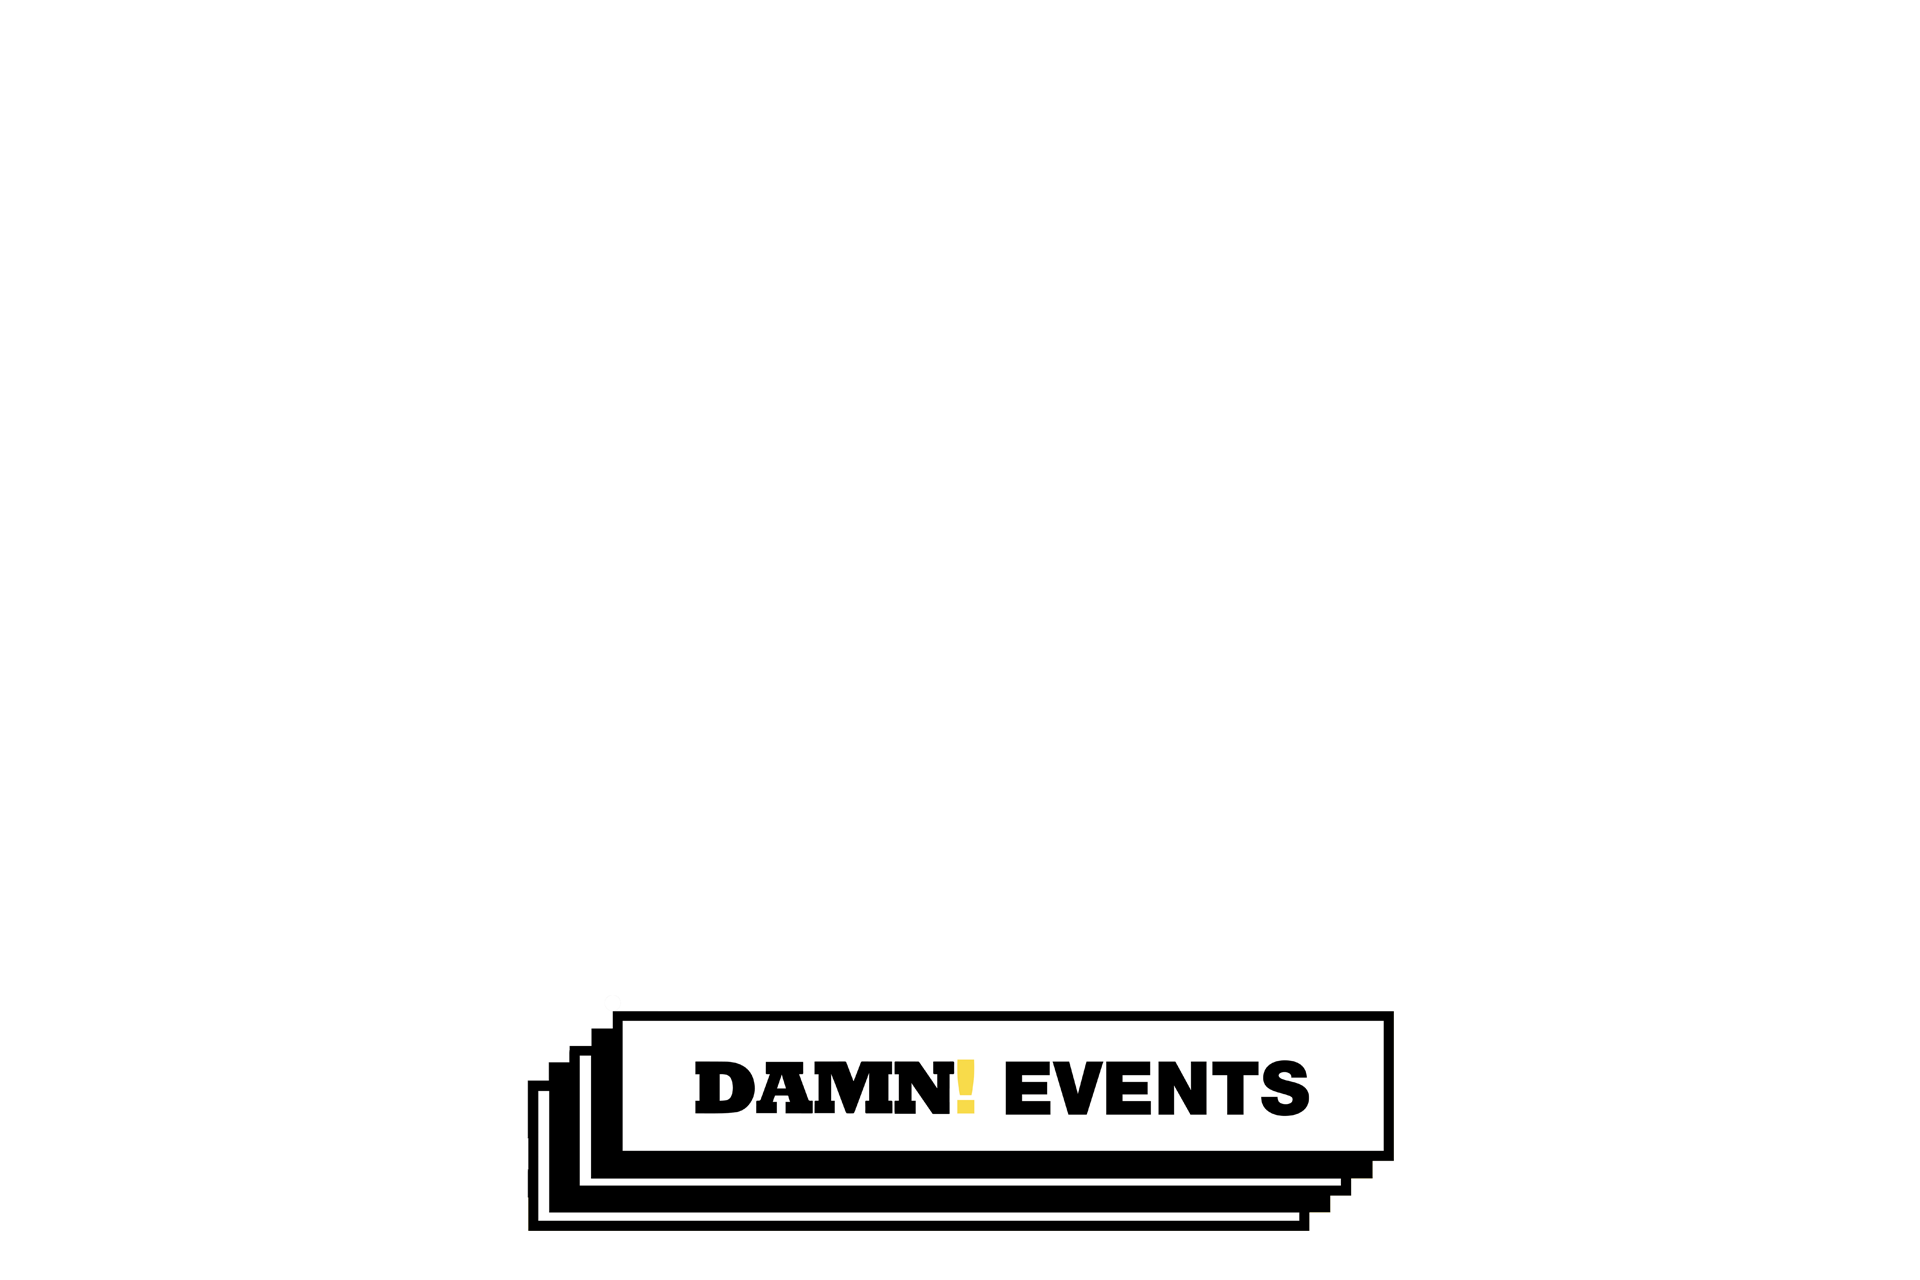 Pour Your DAMN Ideas Create Something Epic!